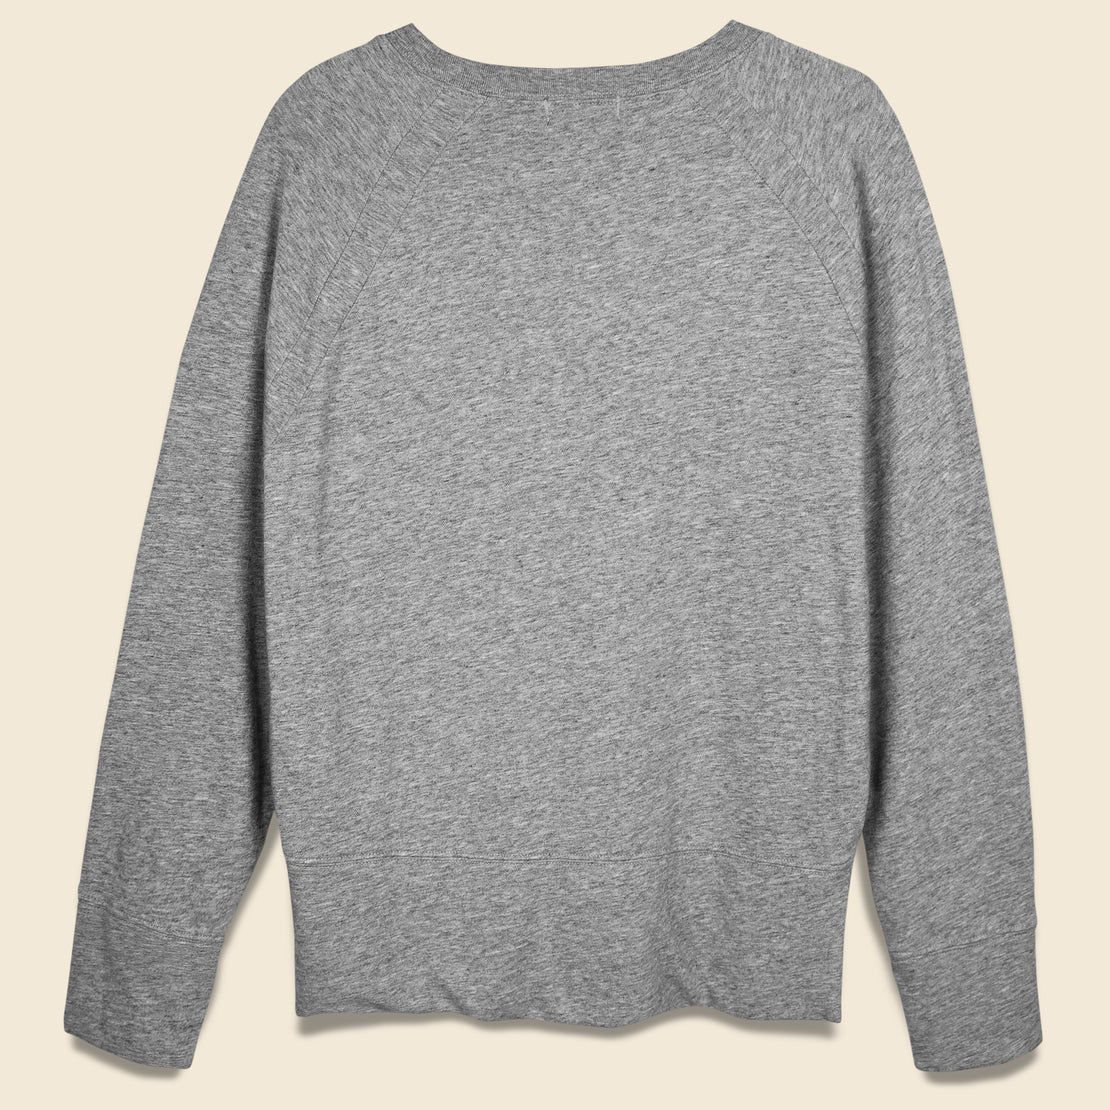 Jessie Pullover Sweatshirt - Heather Grey